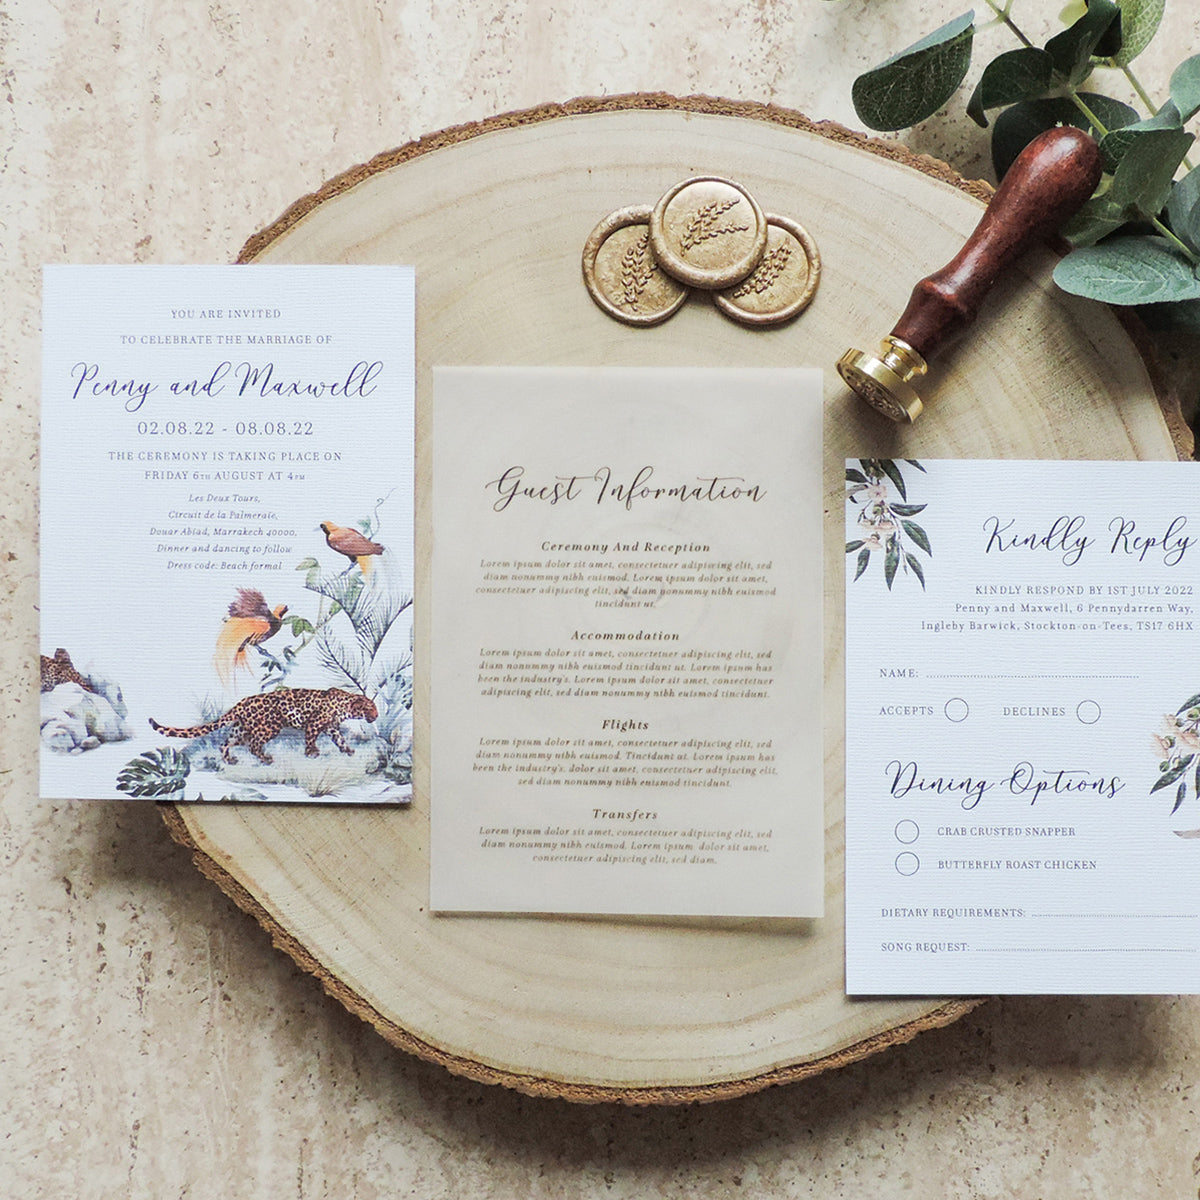 Vellum Wedding Guest Information Card